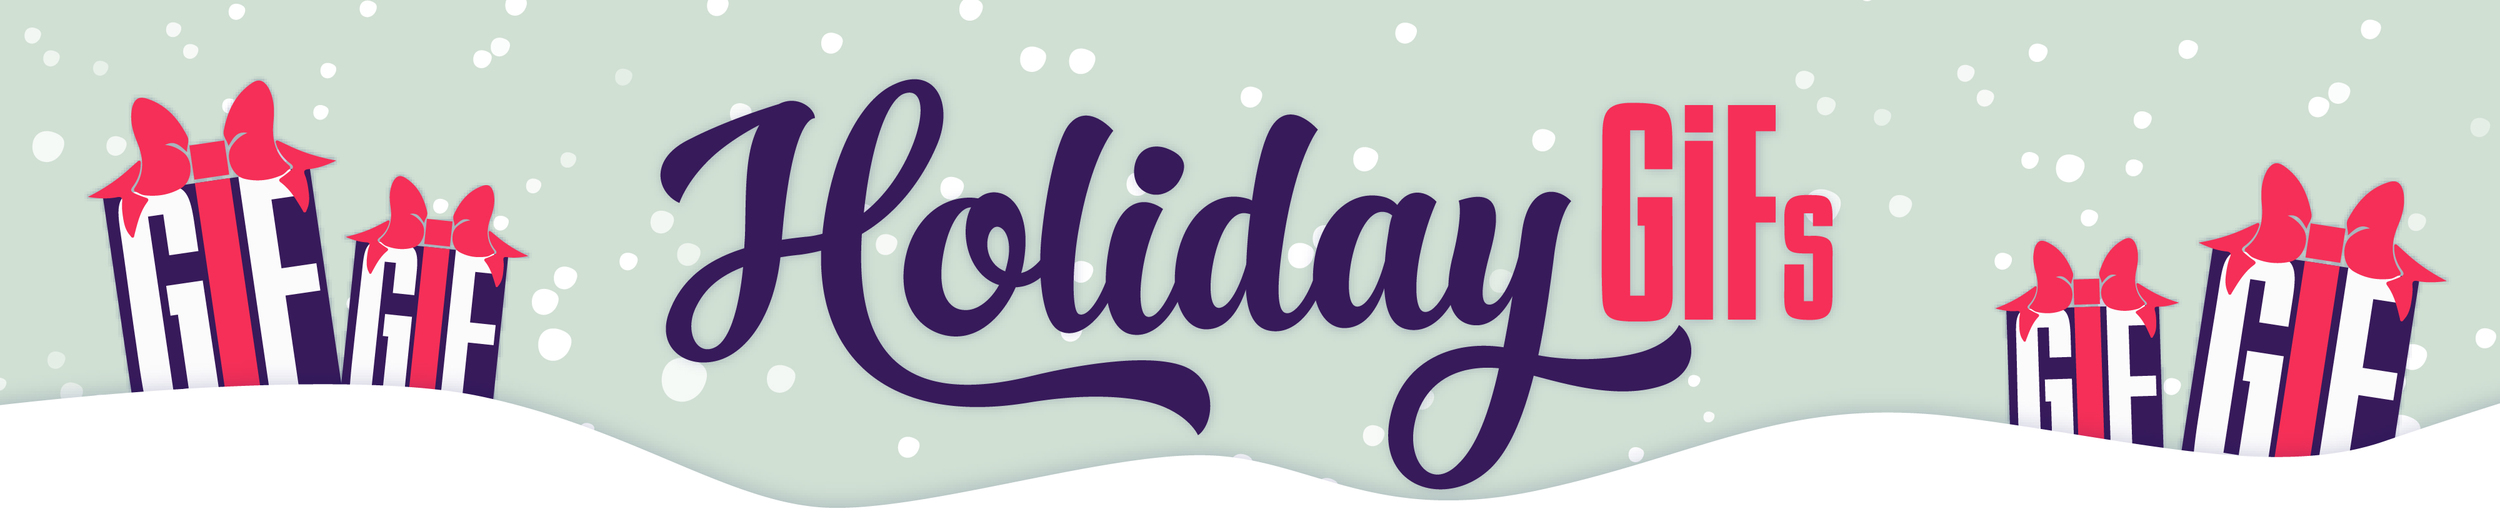 We hope you enjoy these holiday gifs! To enlarge, just click on the gif. We welcome you to drag and drop these into your email or social media posts to share with your friends and family.